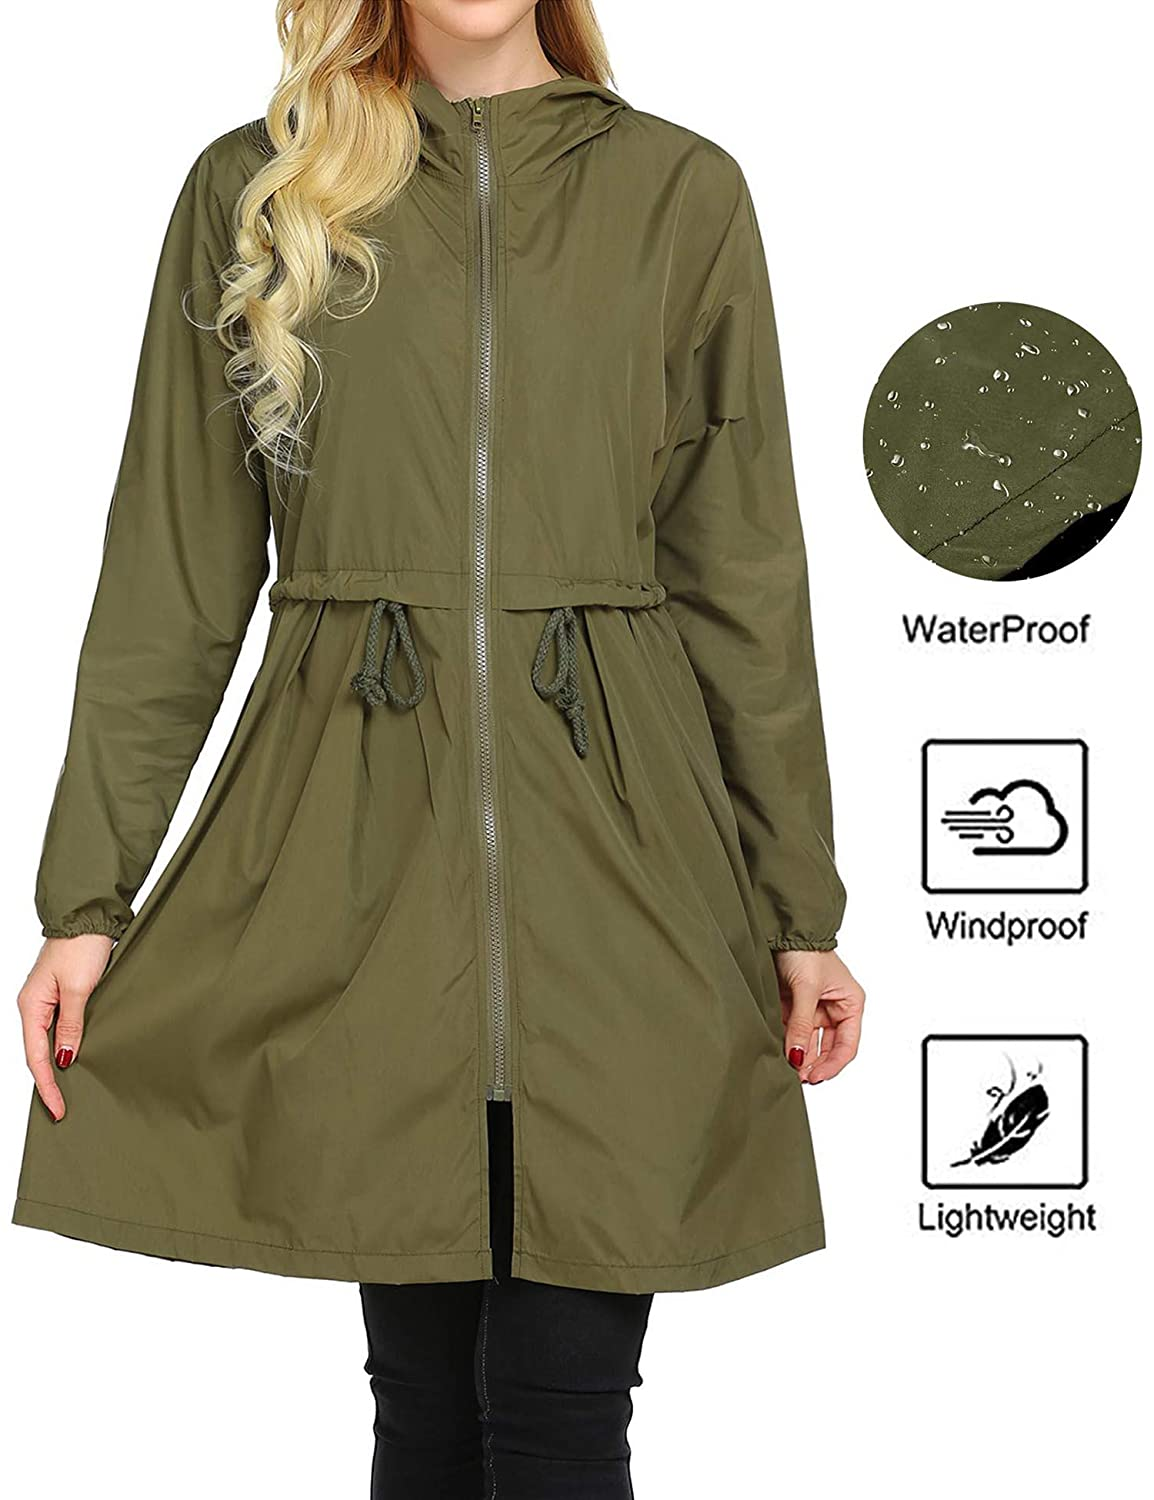 c520b6e62 Amazon.com: Mofavor Women's Hooded Long Sleeve Lightweight Waterproof Rain  Jacket Raincoat: Clothing